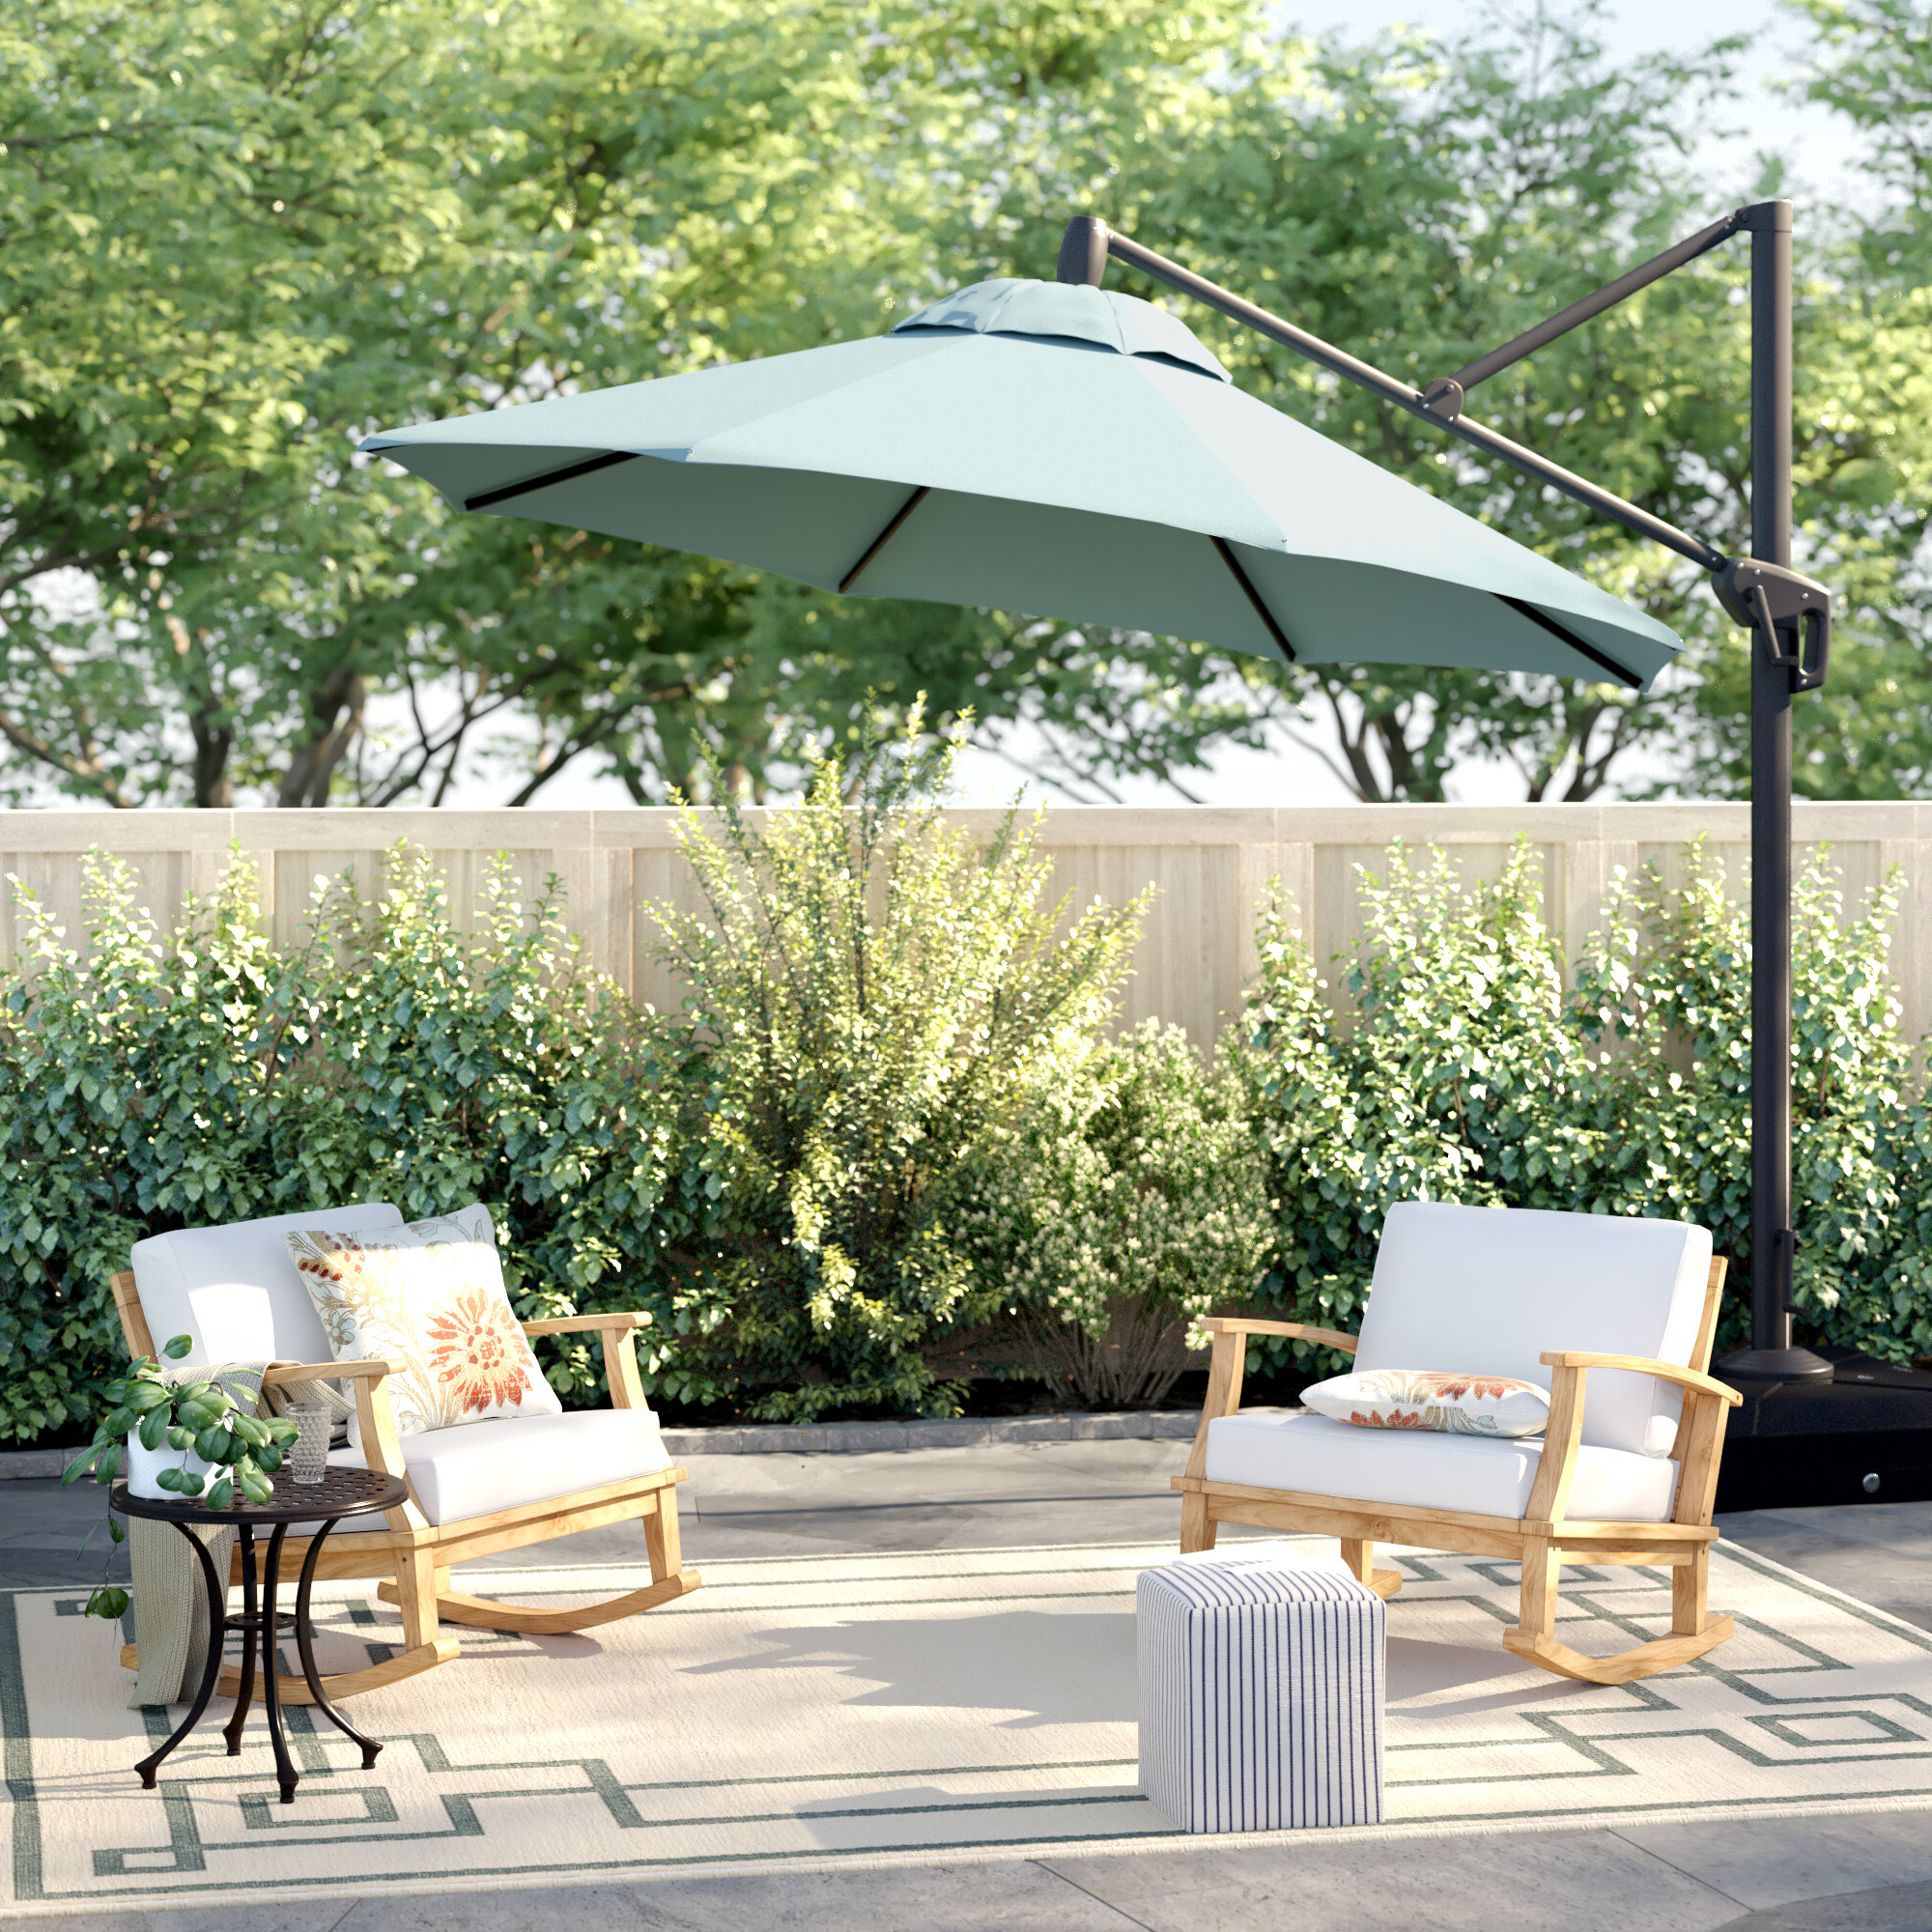 Ceylon 10' Cantilever Sunbrella Umbrella Regarding Best And Newest Carlisle Cantilever Sunbrella Umbrellas (View 11 of 20)